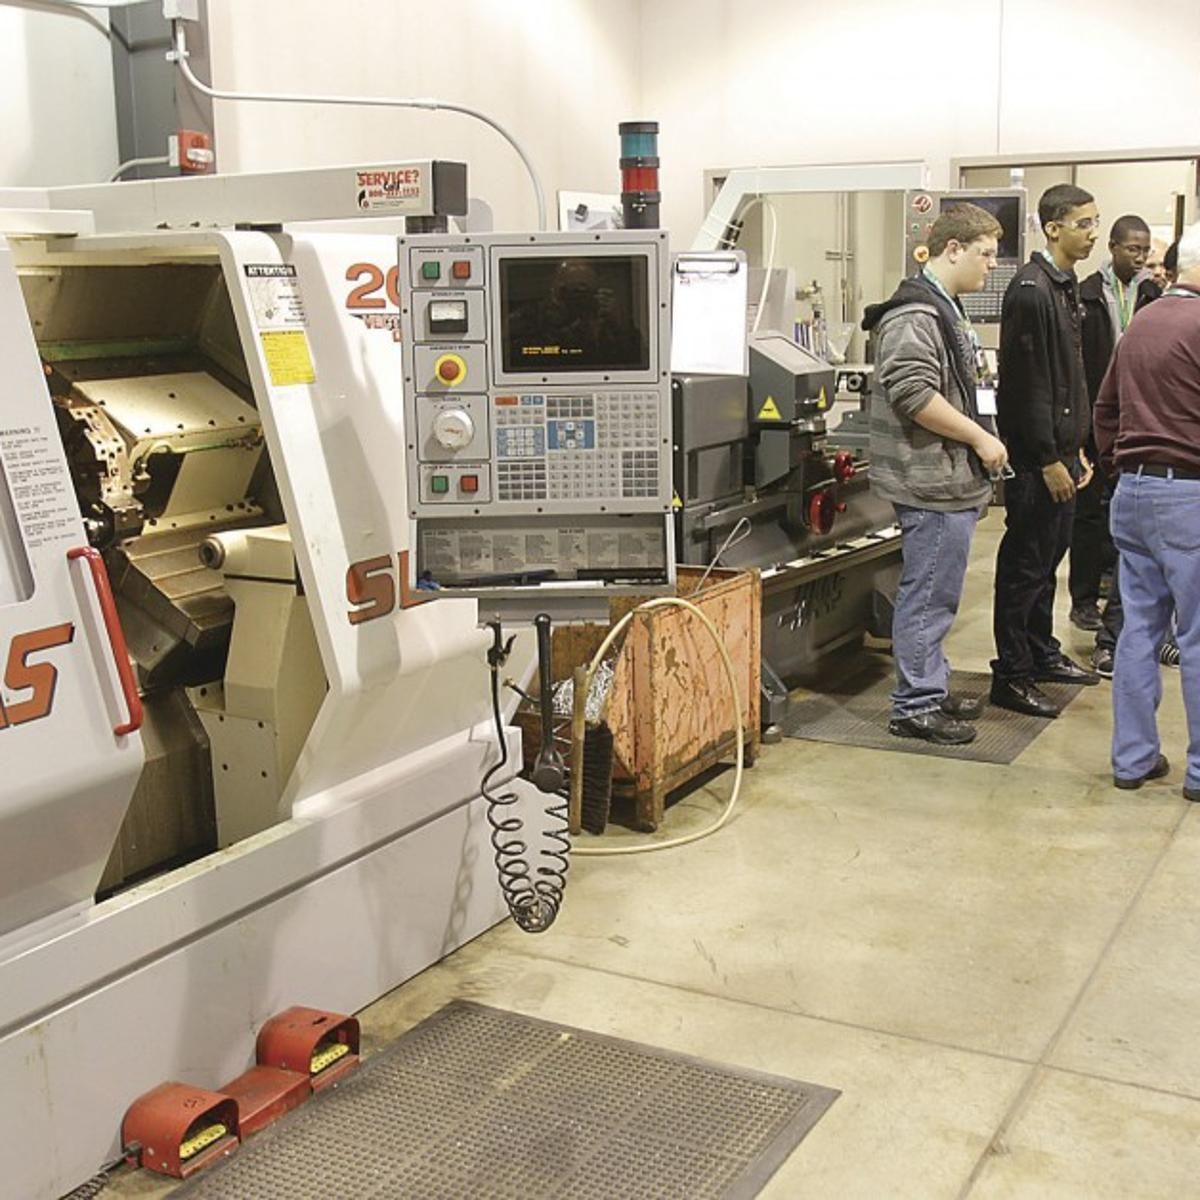 Expo opens eyes to new career options for area youth | Local News ...